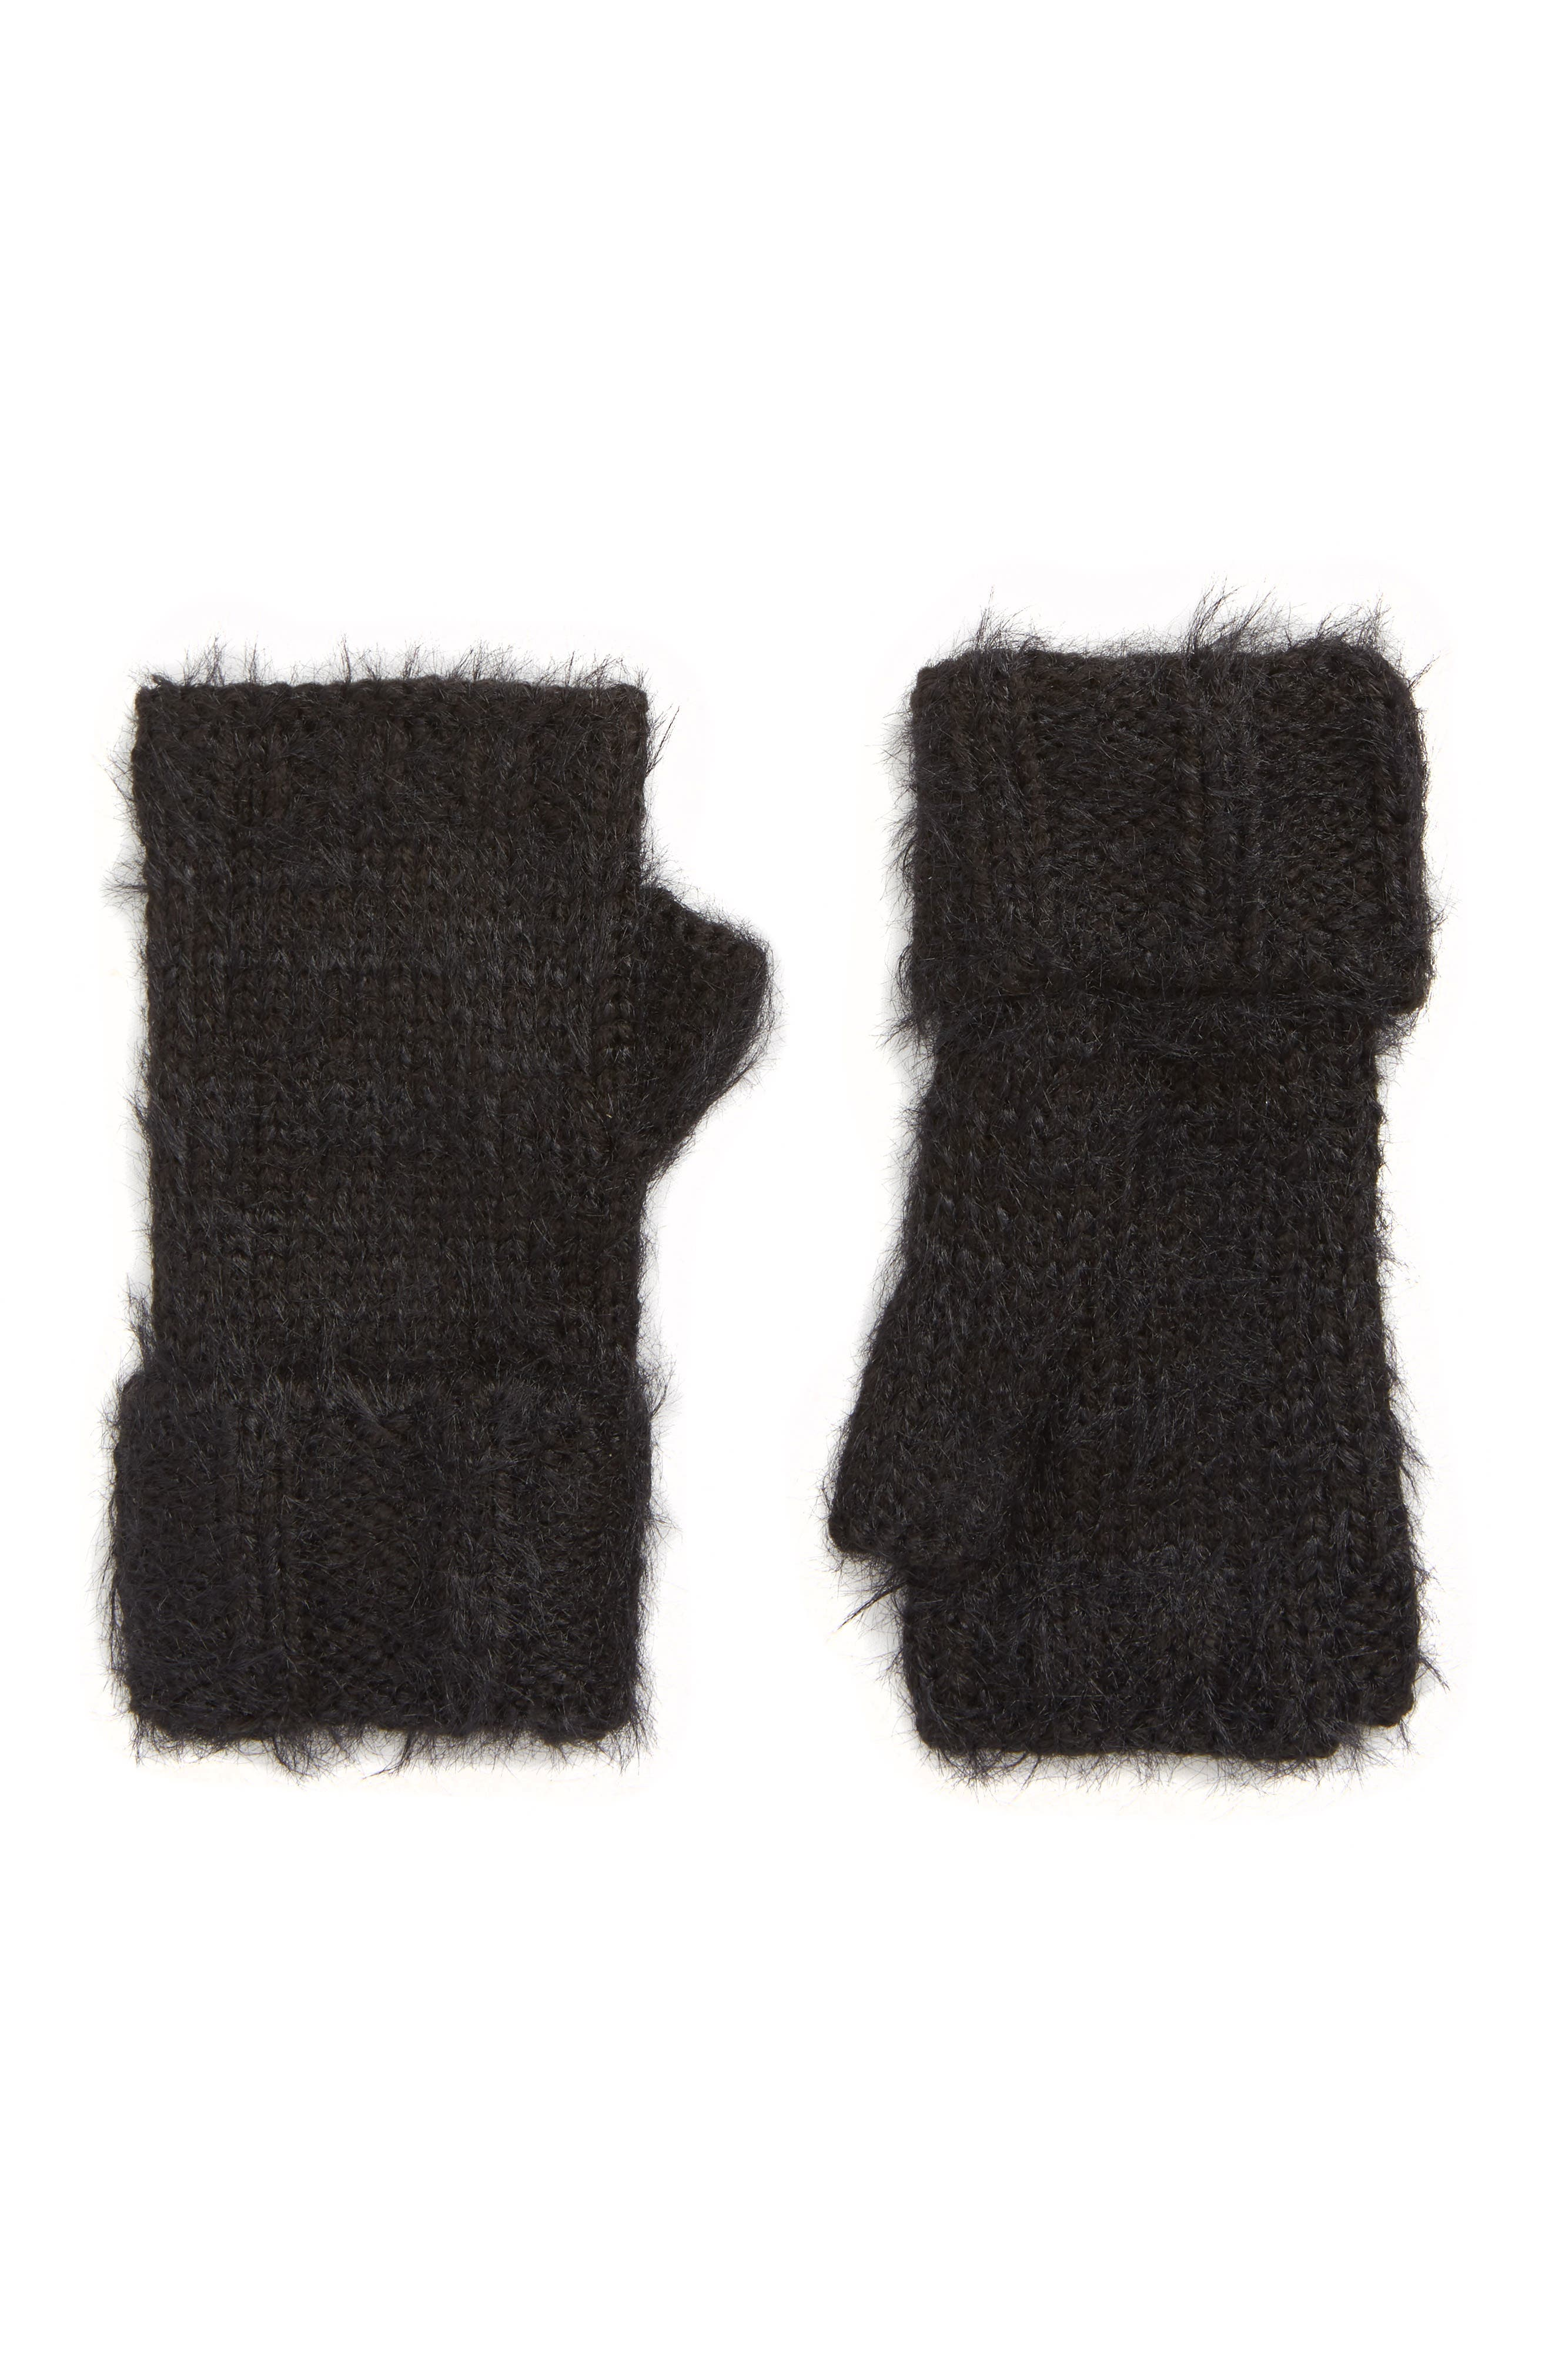 Eyelash Fingerless Gloves,                         Main,                         color, BLACK